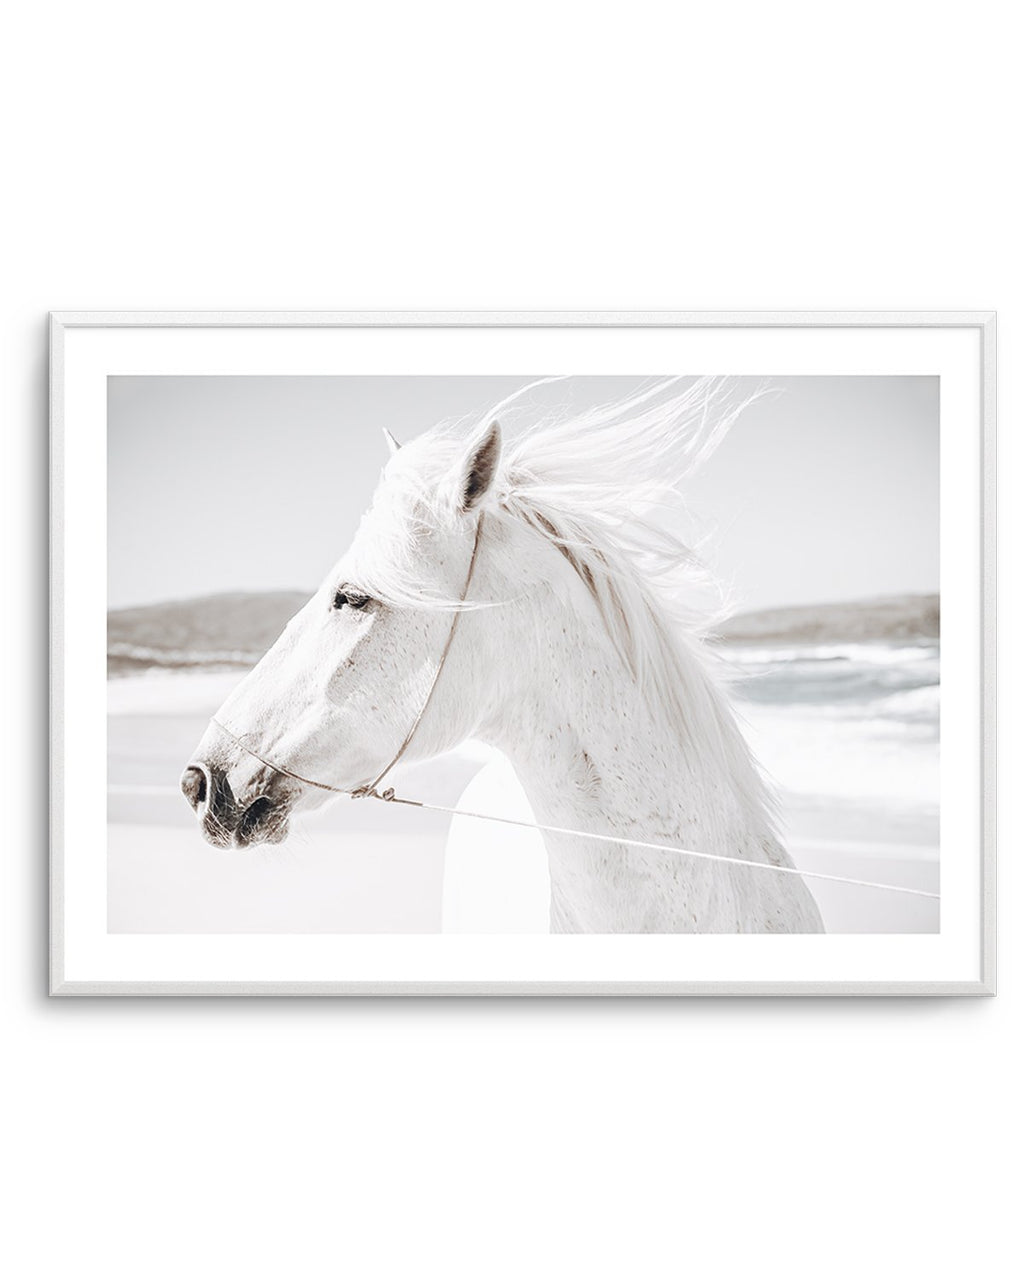 White Horse | Down in Mexico - Olive et Oriel